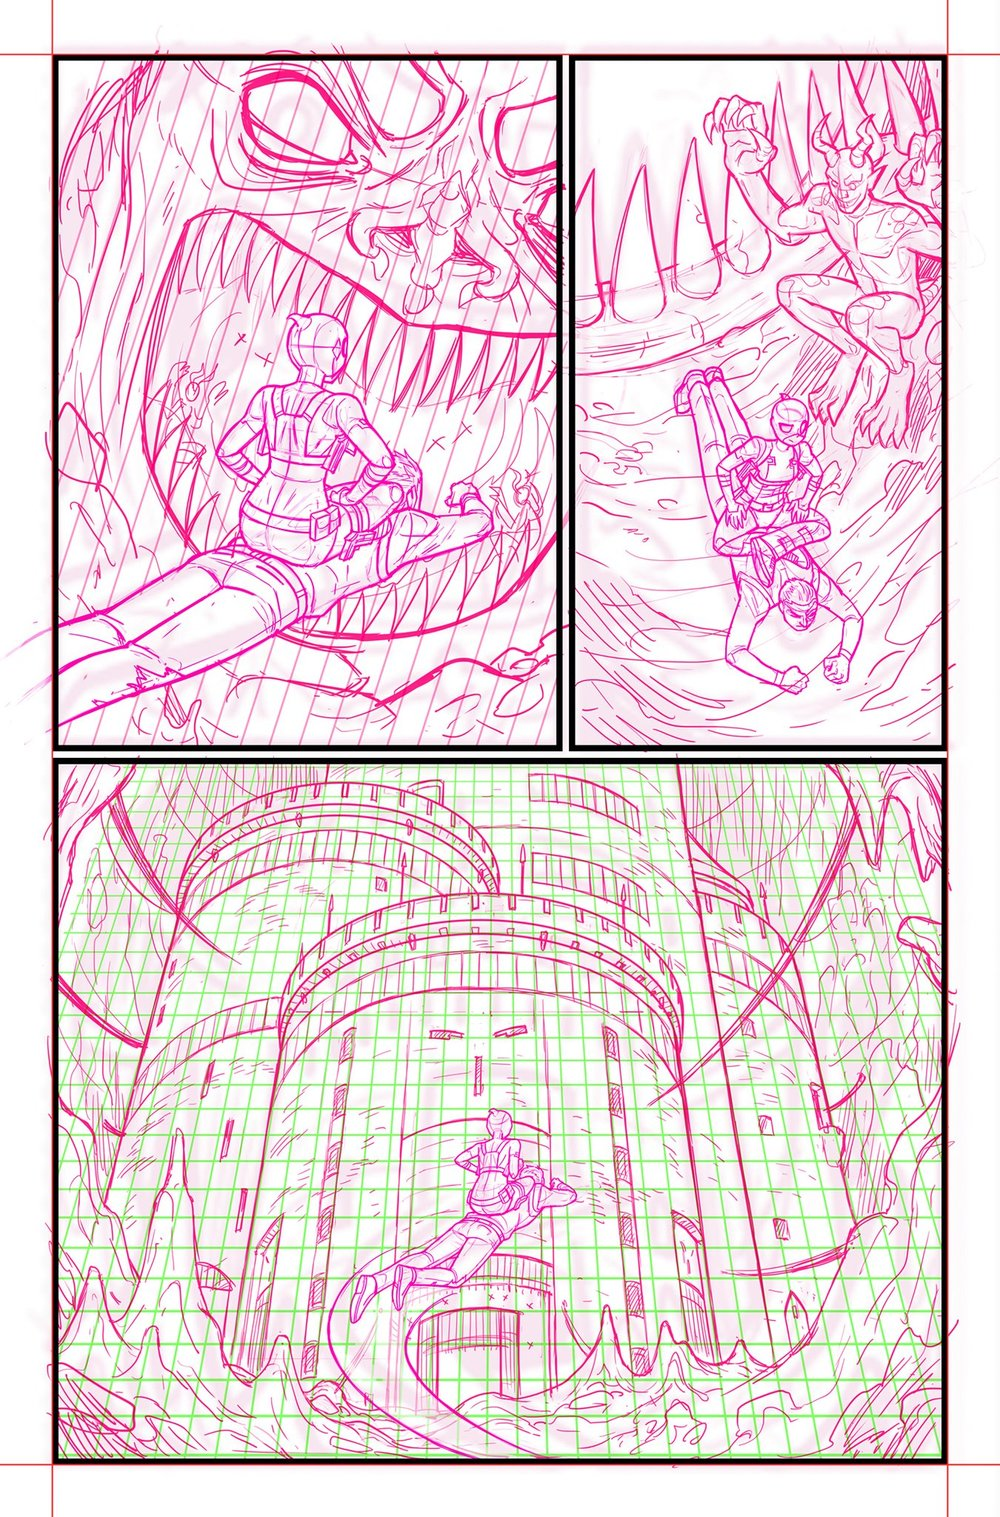 Gwenpool_Pencils_2.jpg